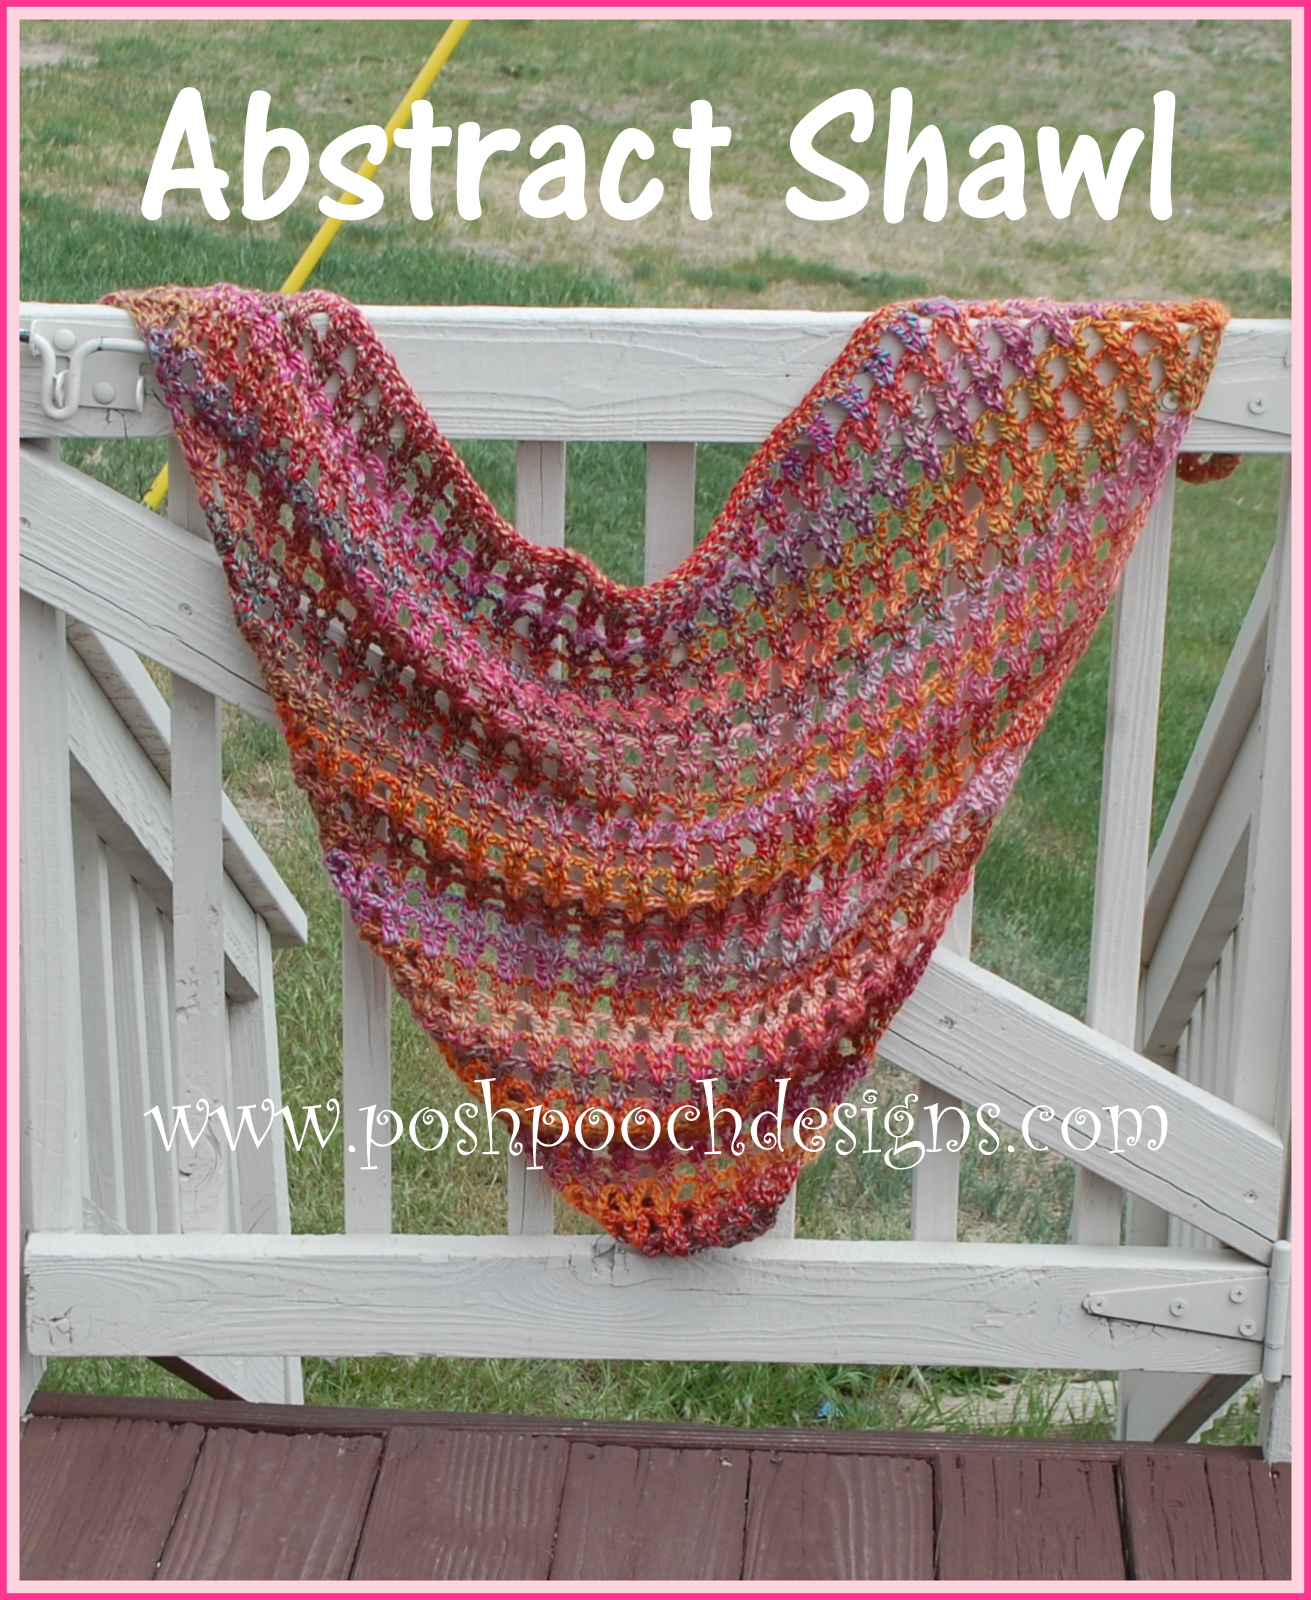 Posh Pooch Designs Dog Clothes: Abstract Shawl - Crochet pattern